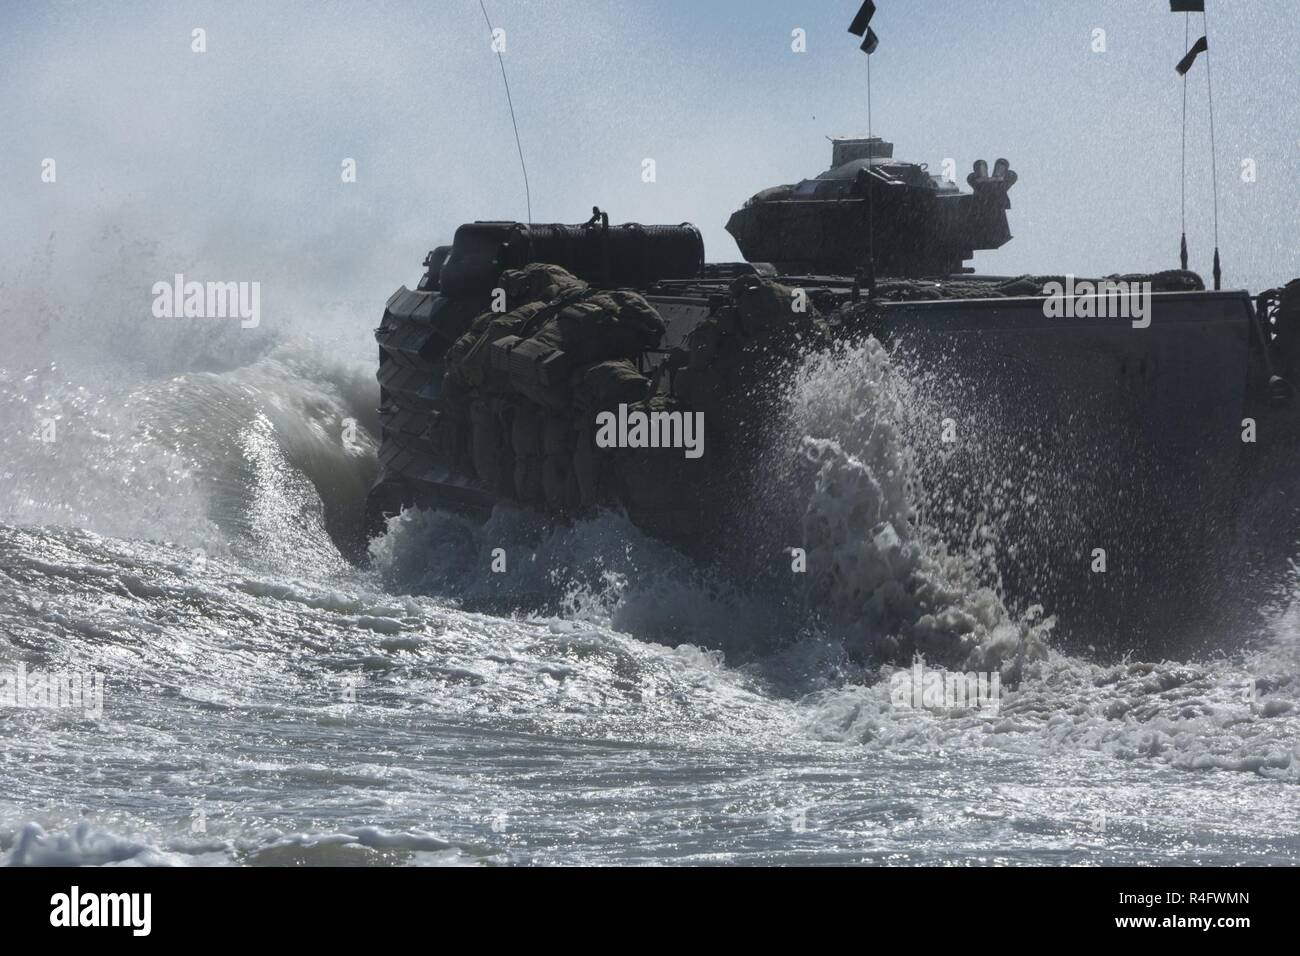 Aav7a1 Assault Amphibious Vehicle Stock Photos Aav7a1 Assault